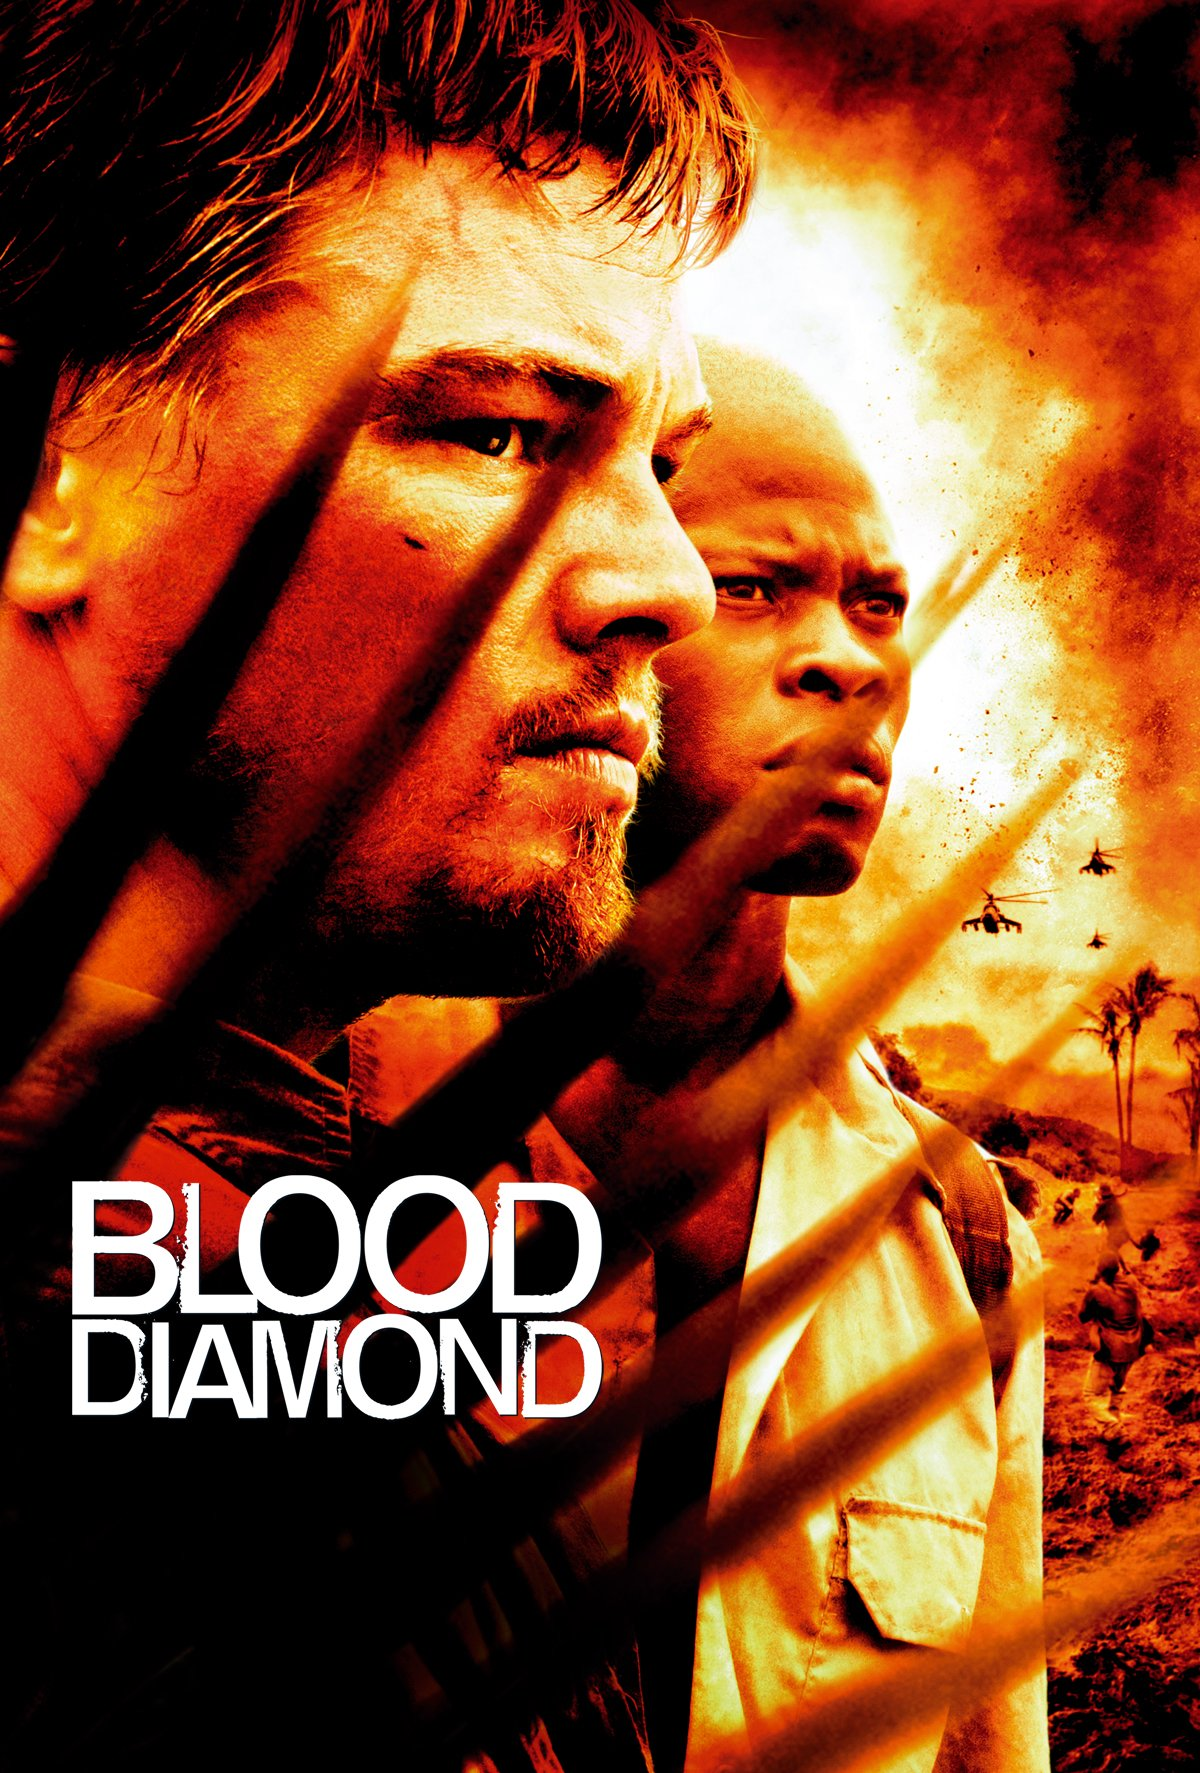 brrip subtitles archer blood about watch following movie lost details subtitle english story episode man by tortured a season mepuk cev malay the diamond